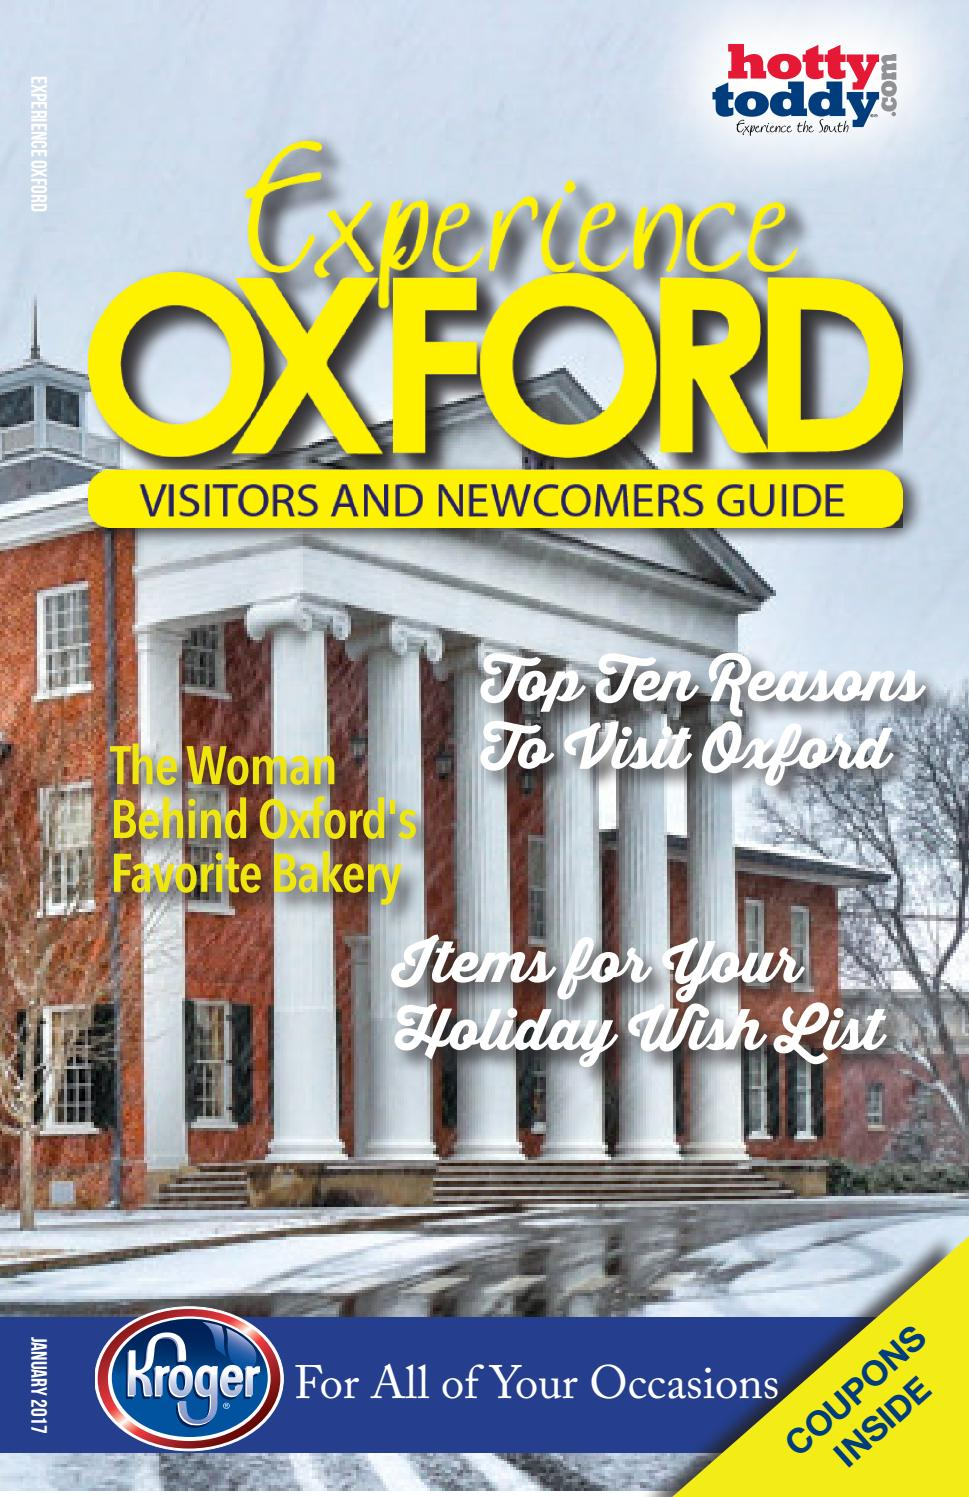 january 2017 by hottytoddy com issuu